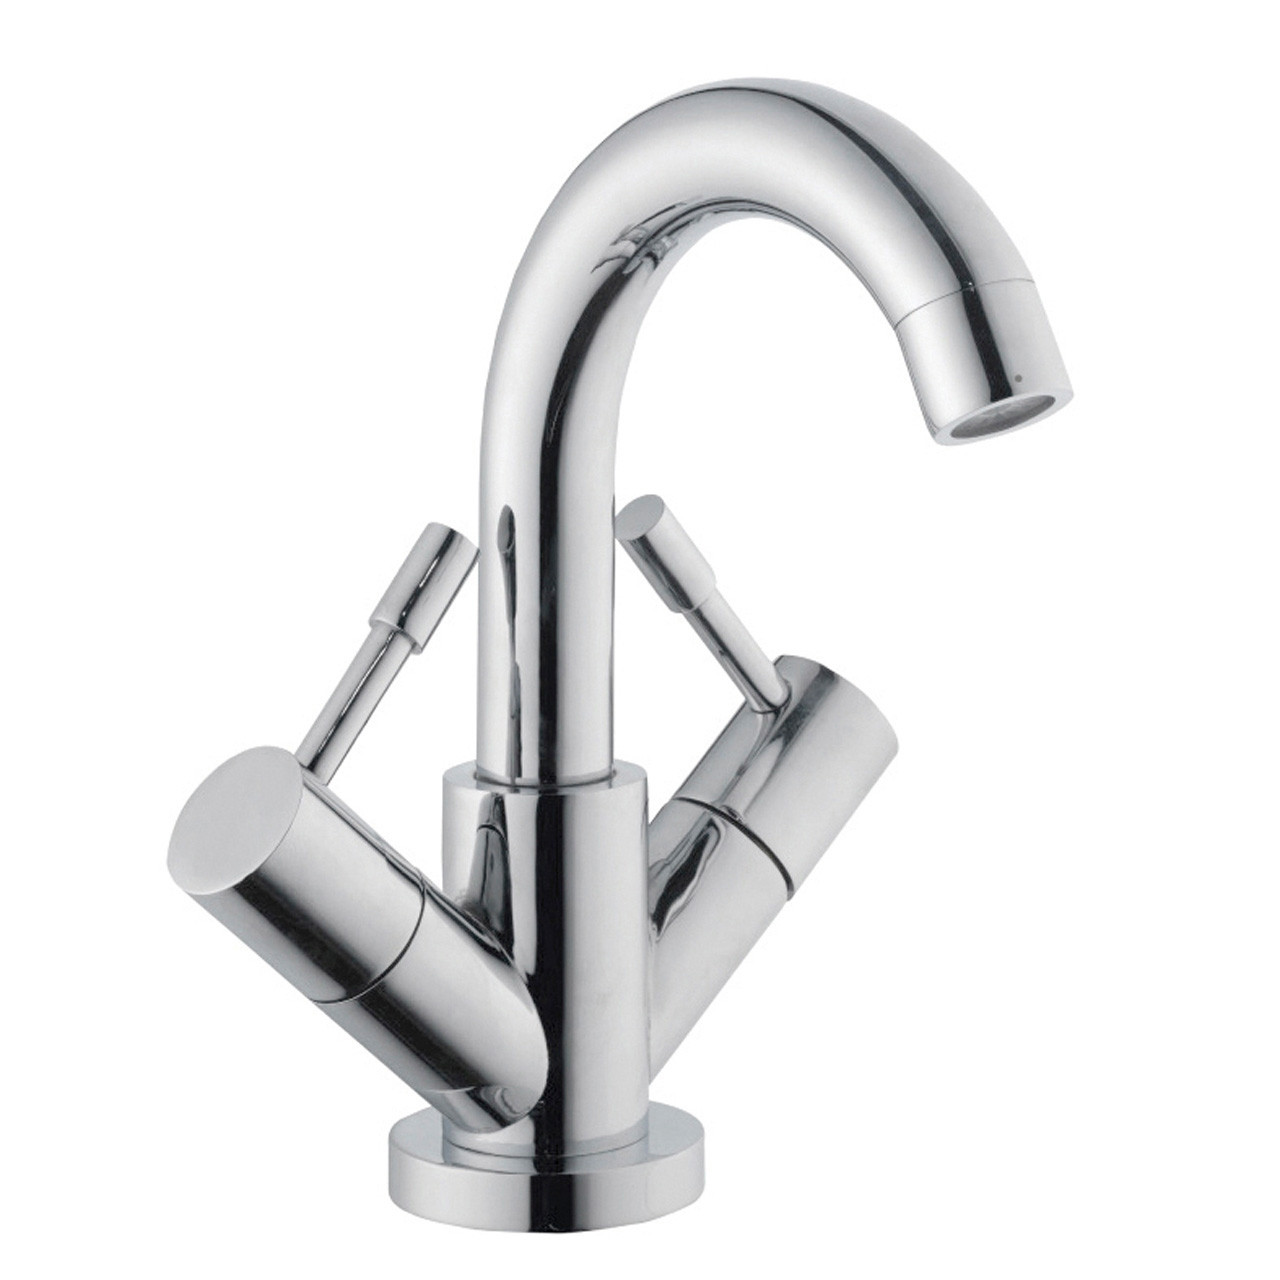 Premier Series 2 Mono Swivel Spout and Pop-up Waste - FJ315